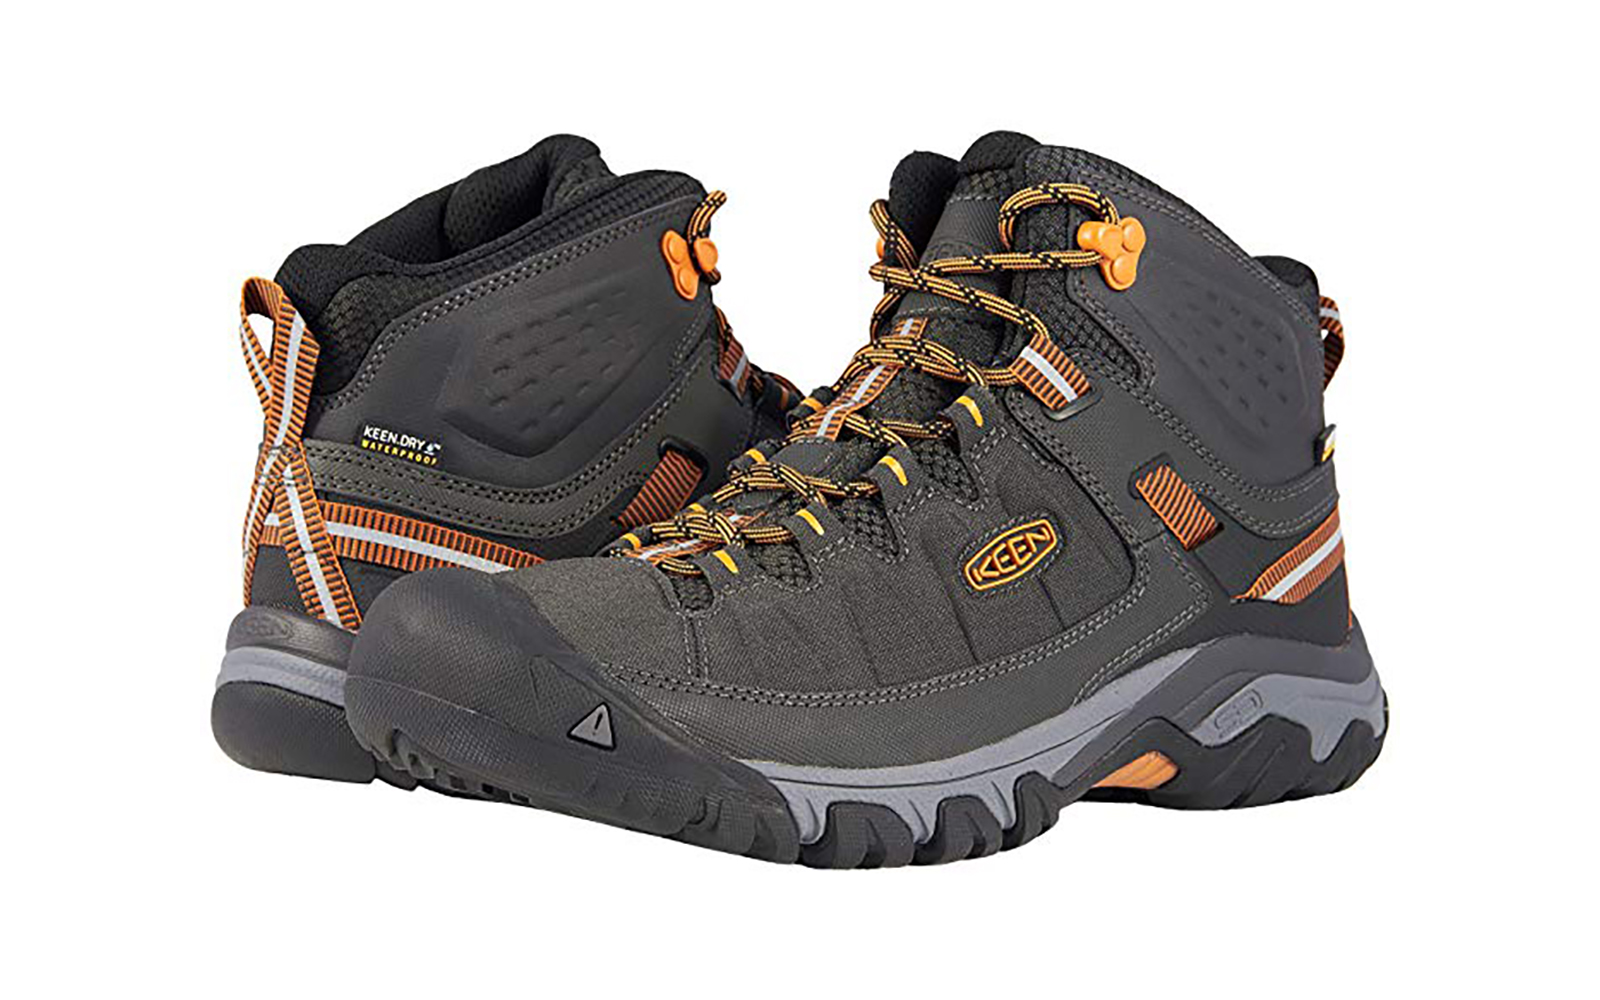 b34bc5ae94a7 Keen Targhee Exp Mid WP Hiking Boot